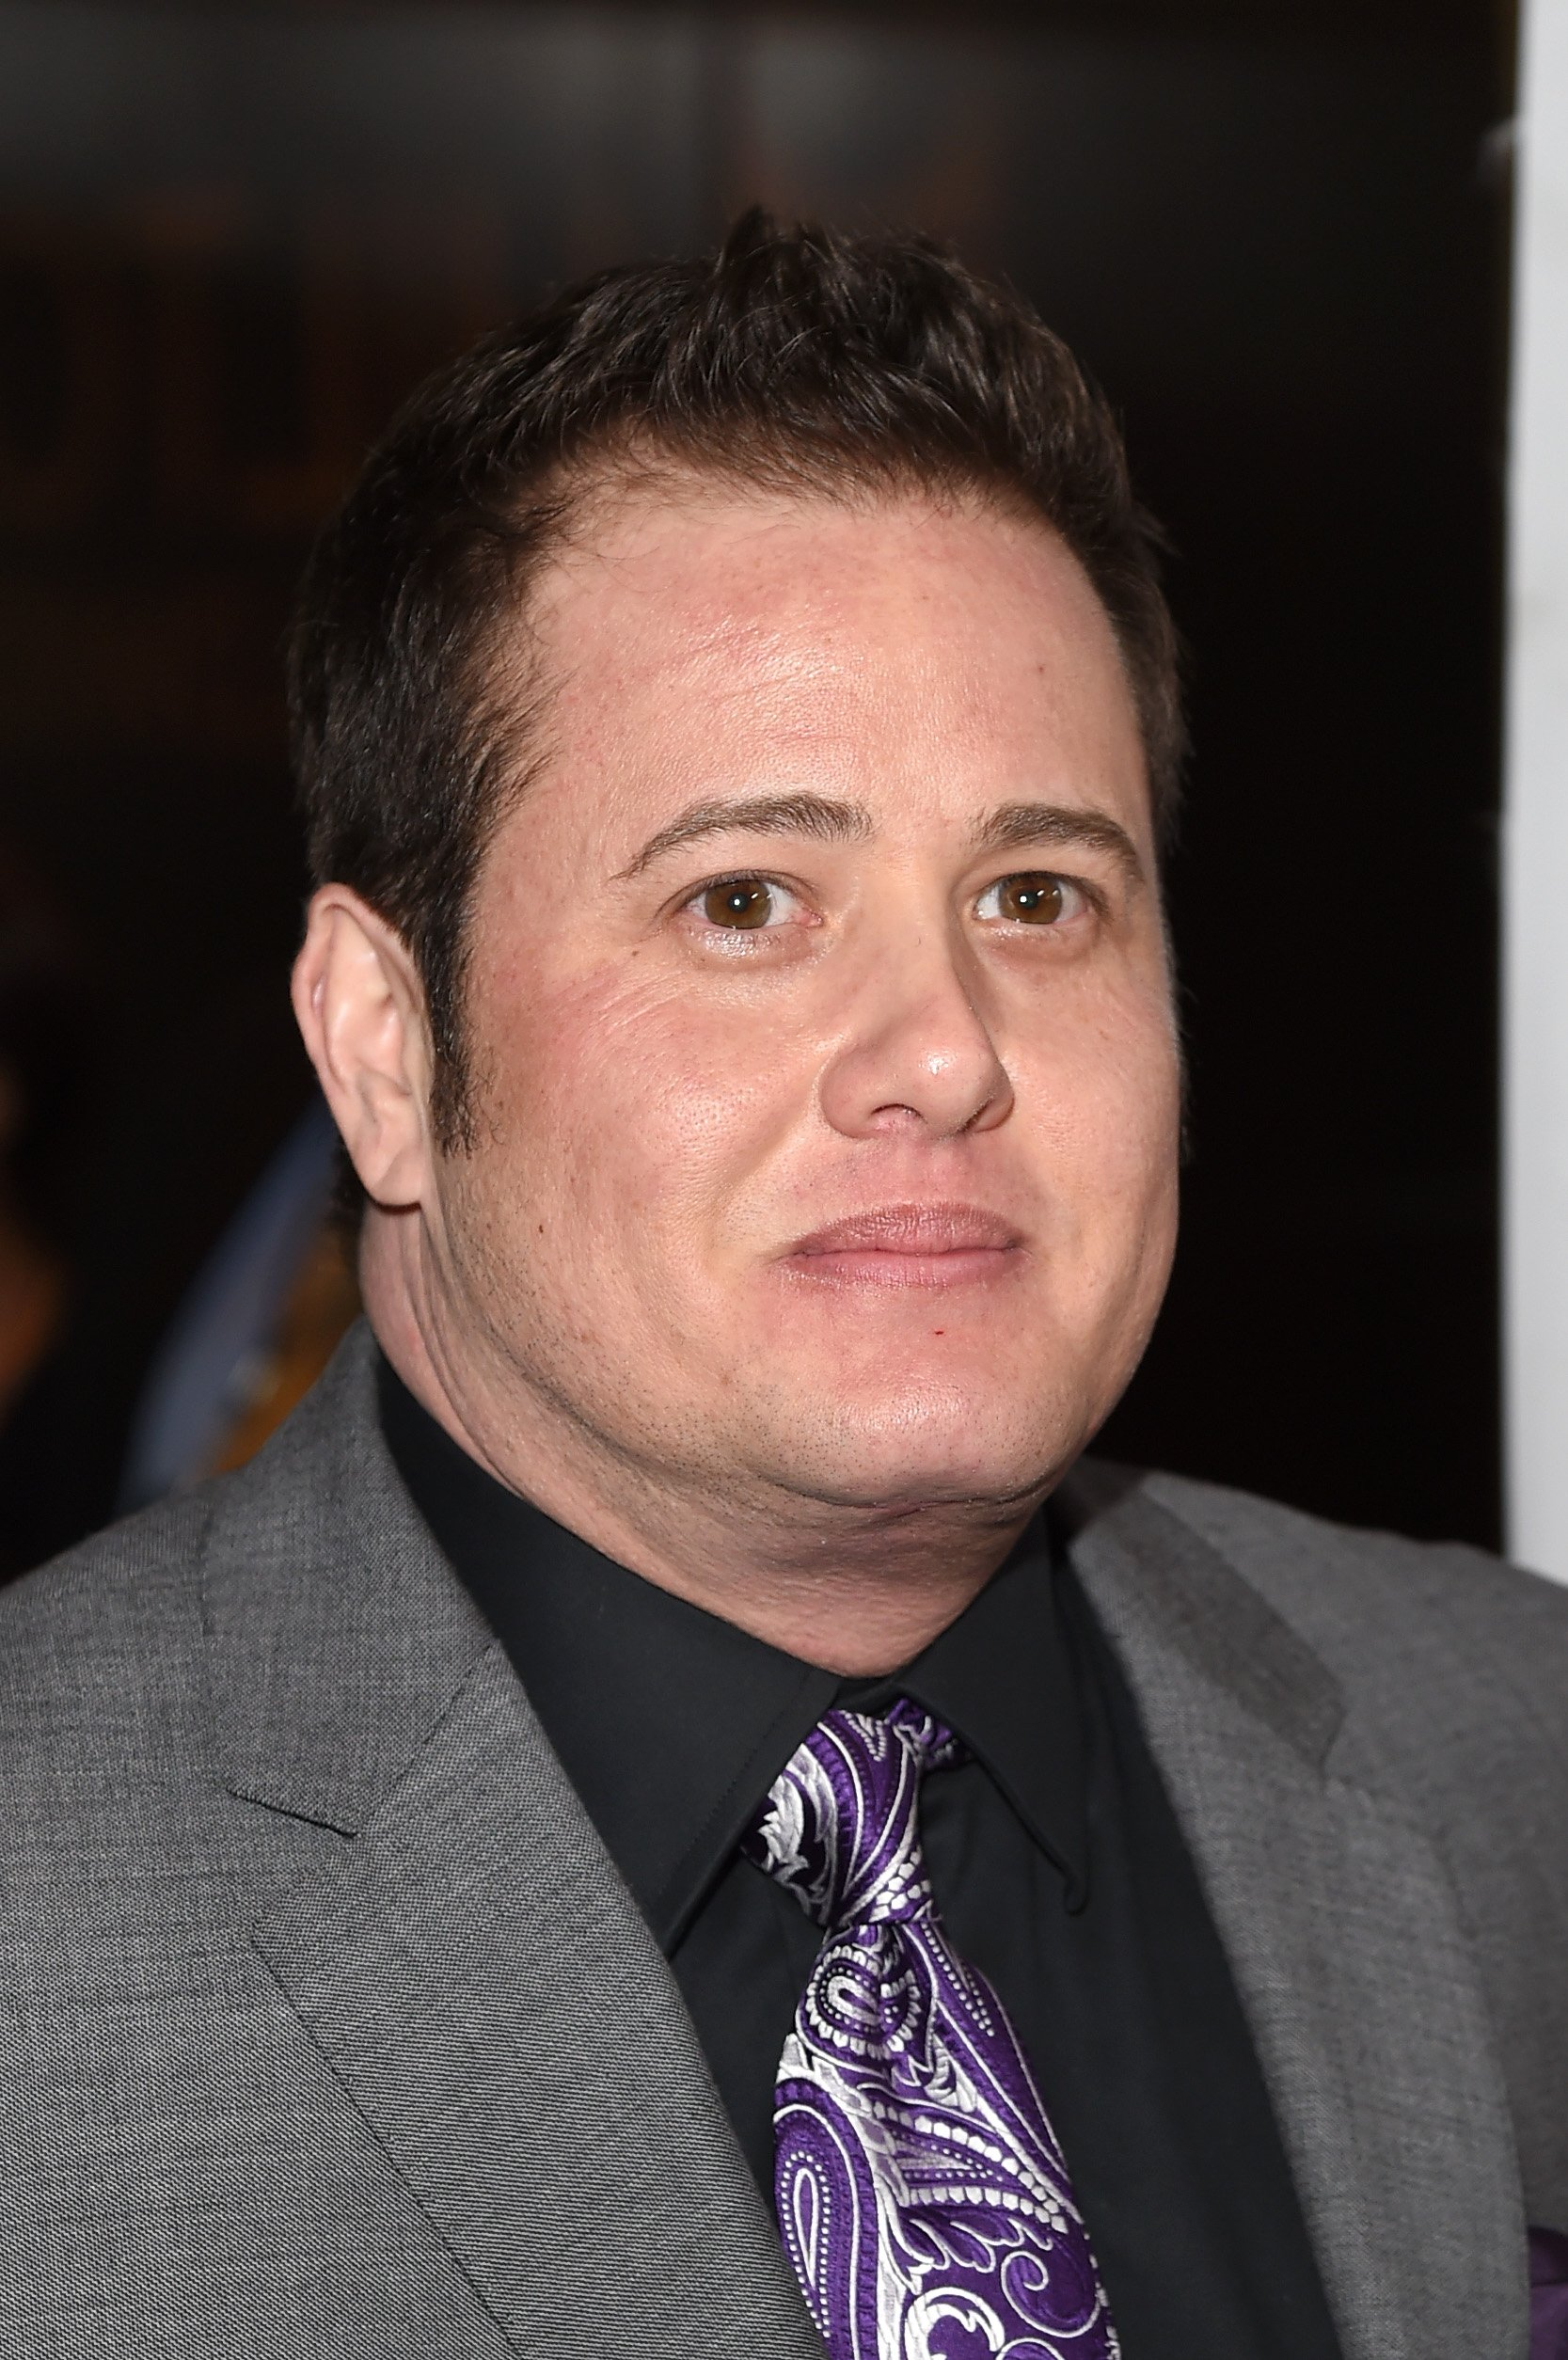 Chaz Bono attends the 25th Annual GLAAD Media Awards at The Beverly Hilton Hotel on April 12, 2014 | Photo: GettyImages